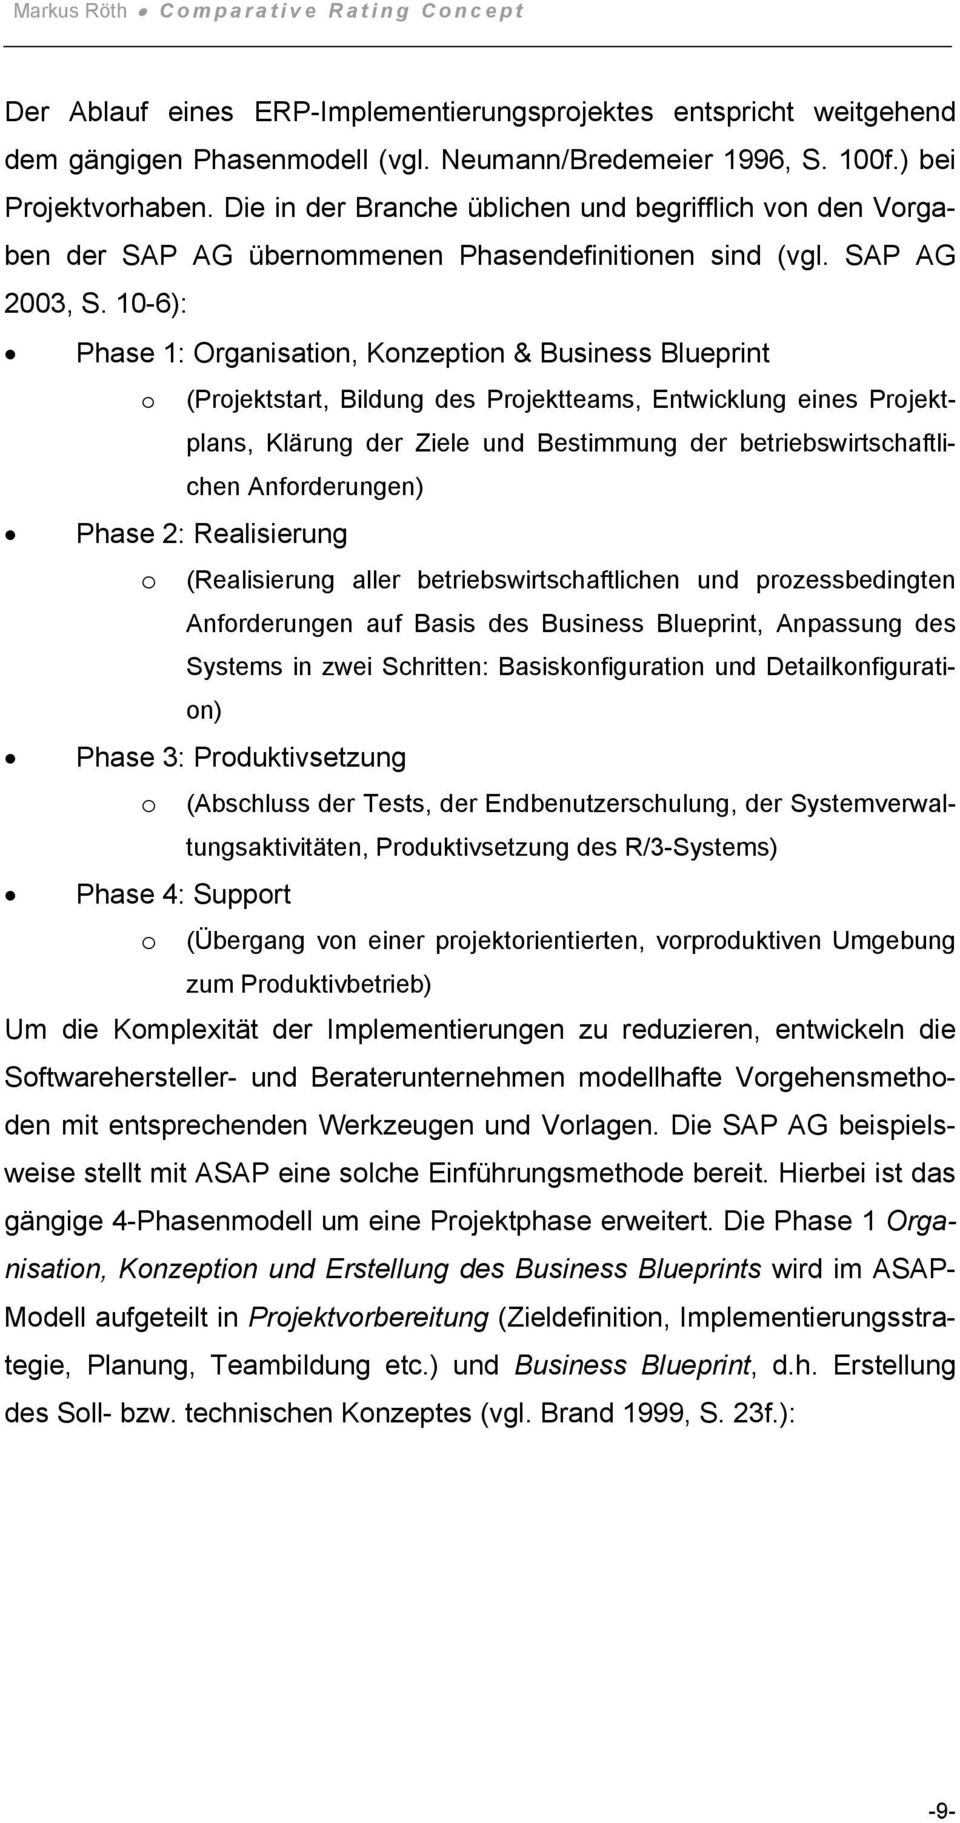 10-6): Phase 1: Organisation, Konzeption & Business Blueprint o (Projektstart, Bildung des Projektteams, Entwicklung eines Projektplans, Klärung der Ziele und Bestimmung der betriebswirtschaftlichen